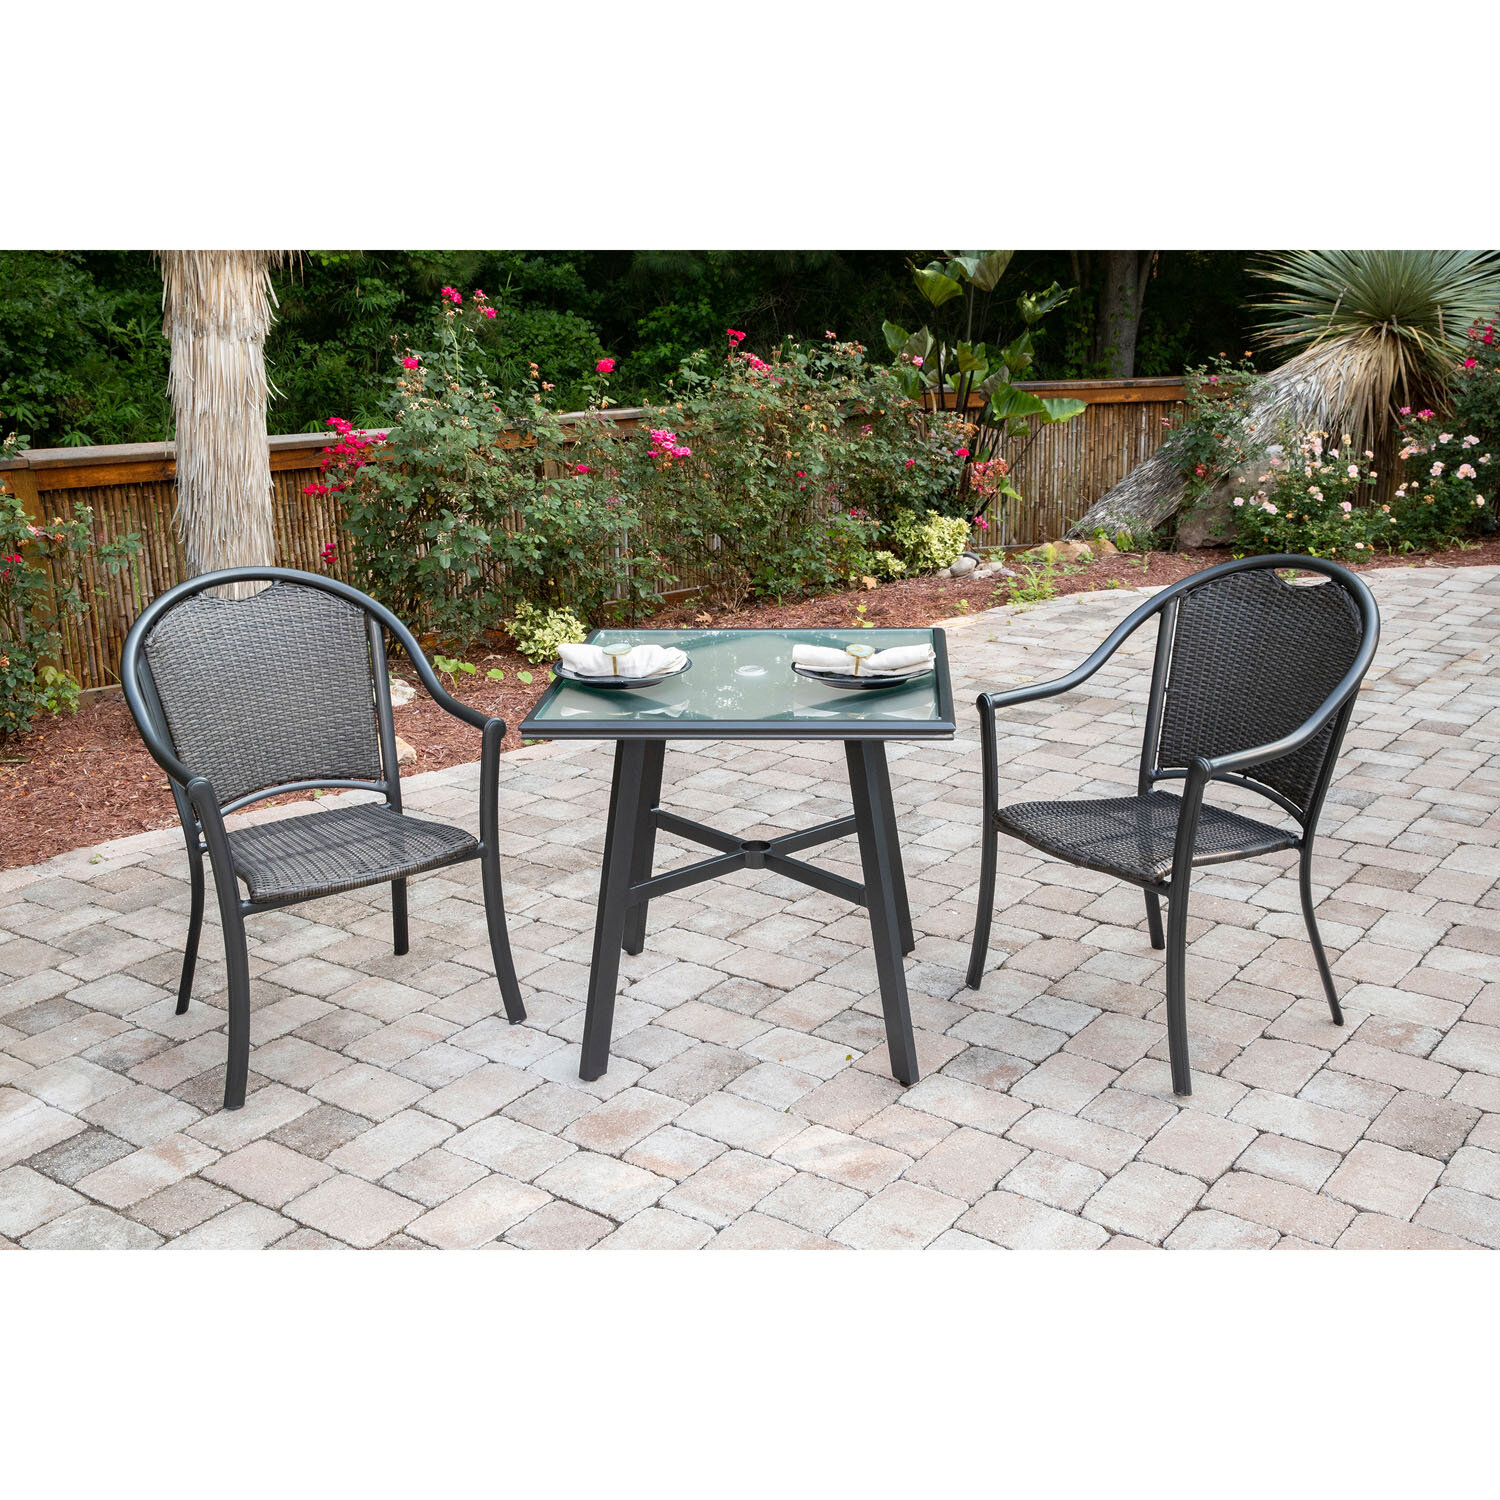 Famous Charlton Home Bearden 3 Piece Commercial Grade Patio Set With 2 Intended For Bearden 3 Piece Dining Sets (#8 of 20)